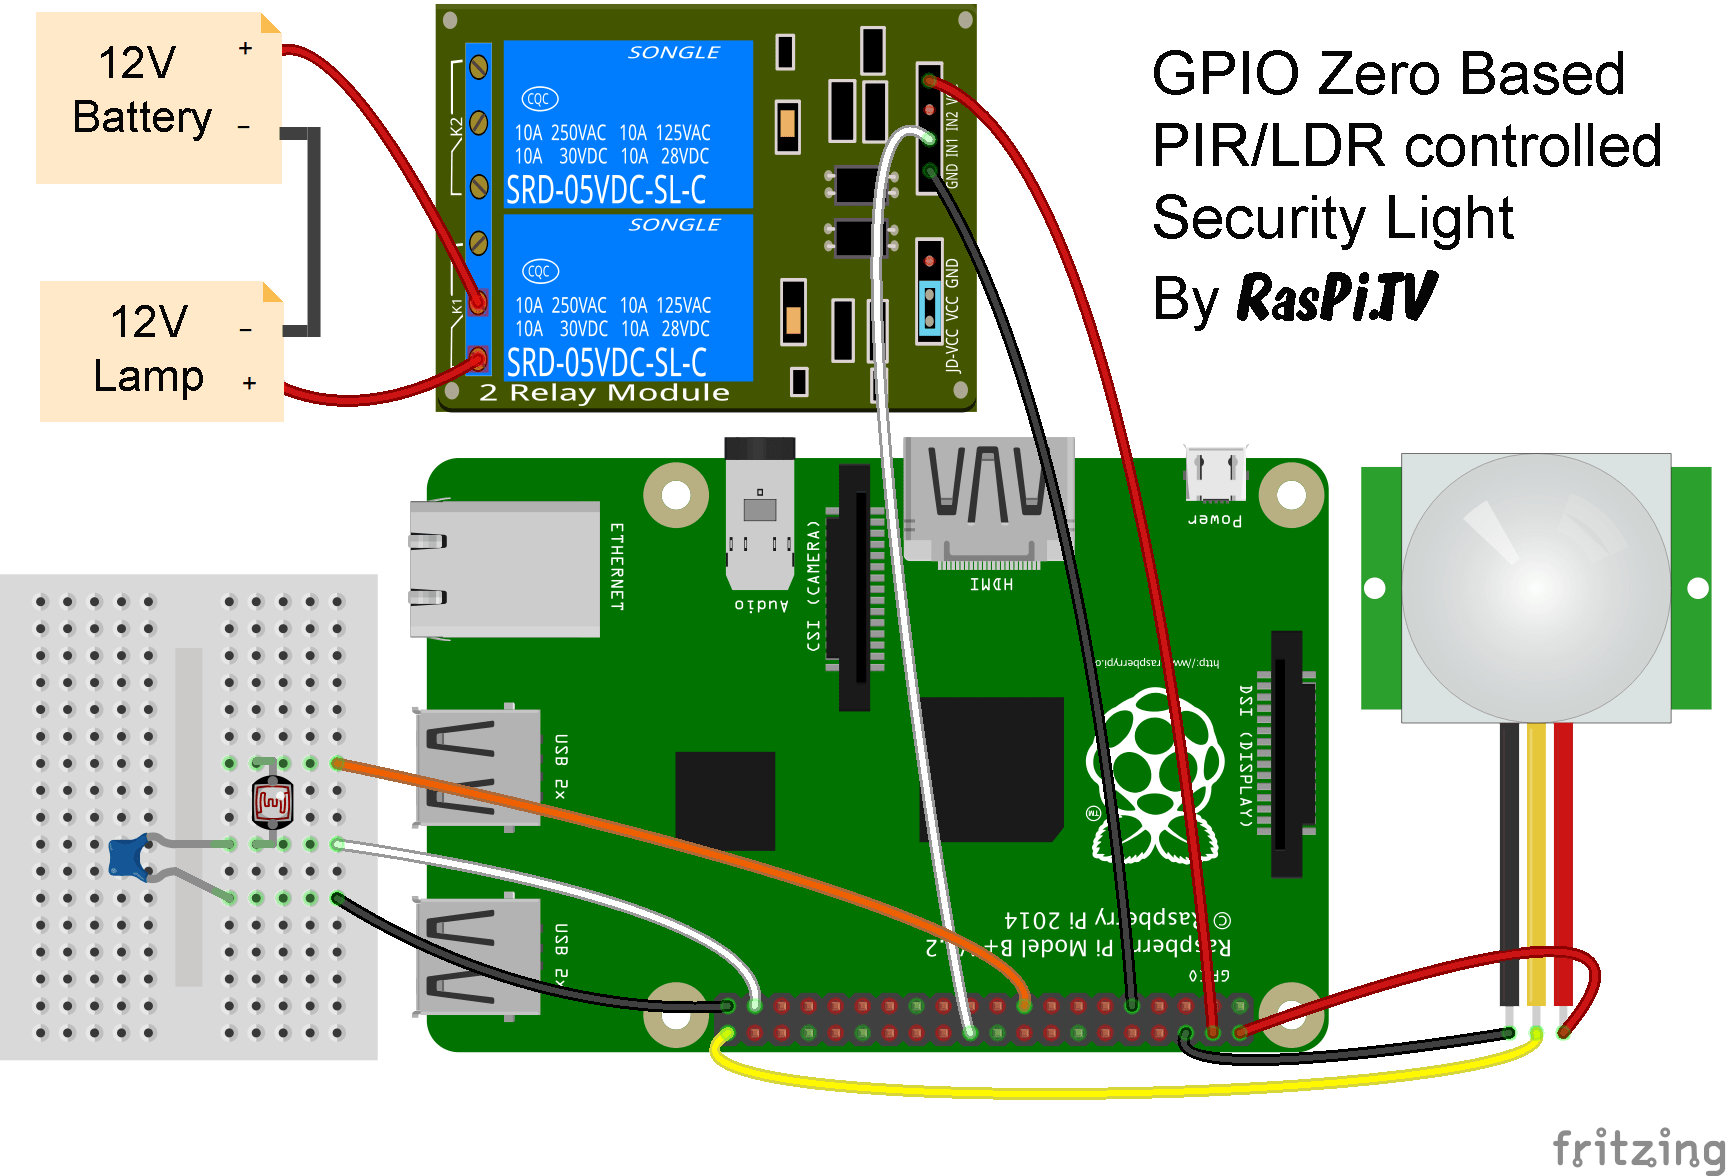 hight resolution of circuit for gpio zero pir ldr 12v security light